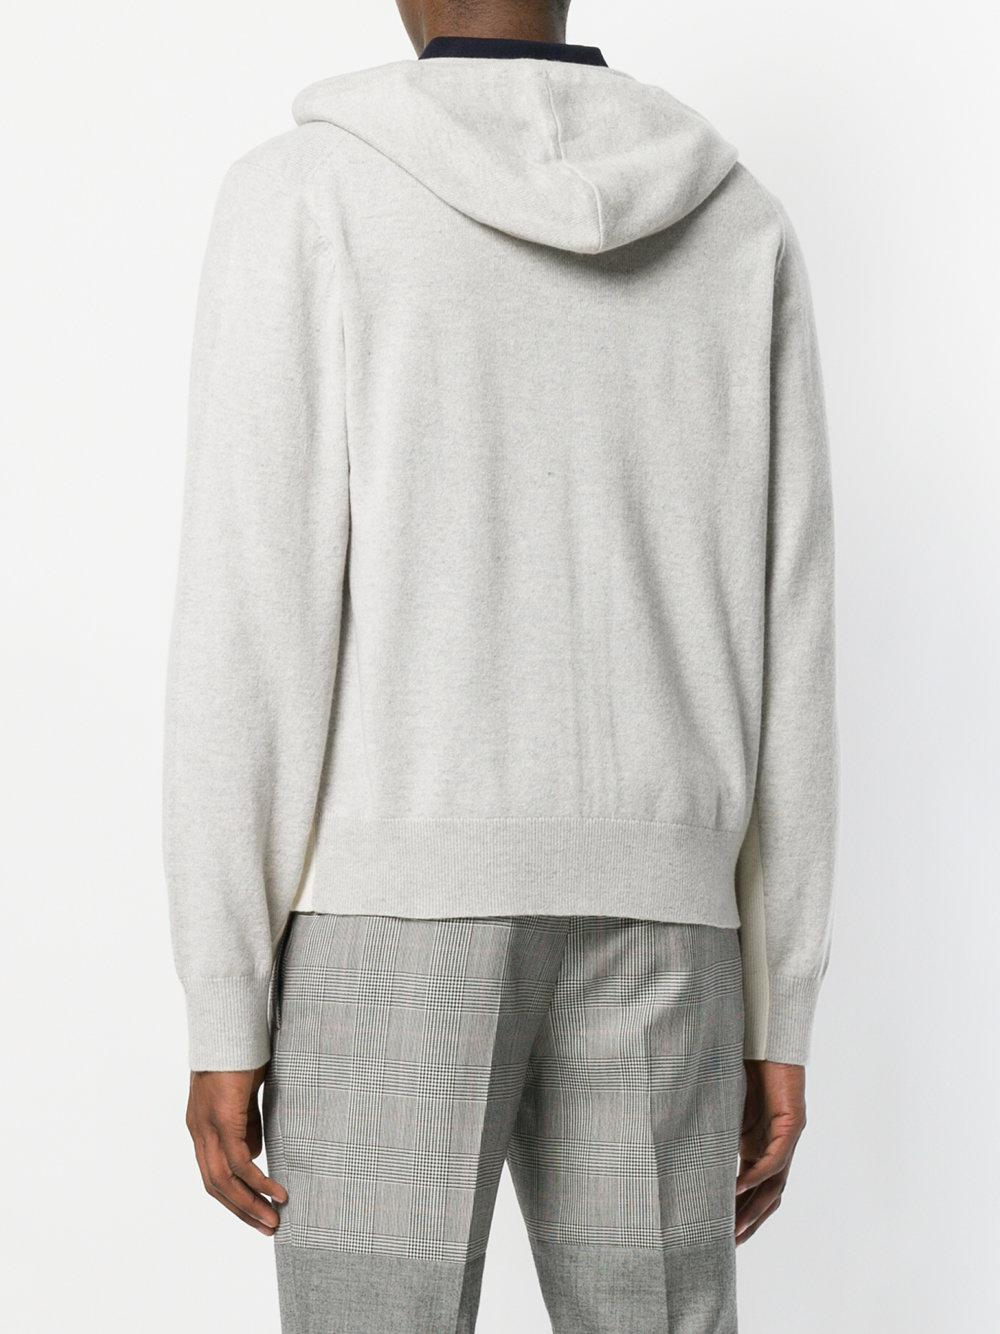 JOSEPH Cashmere Hooded Cardigan in Grey (Grey) for Men